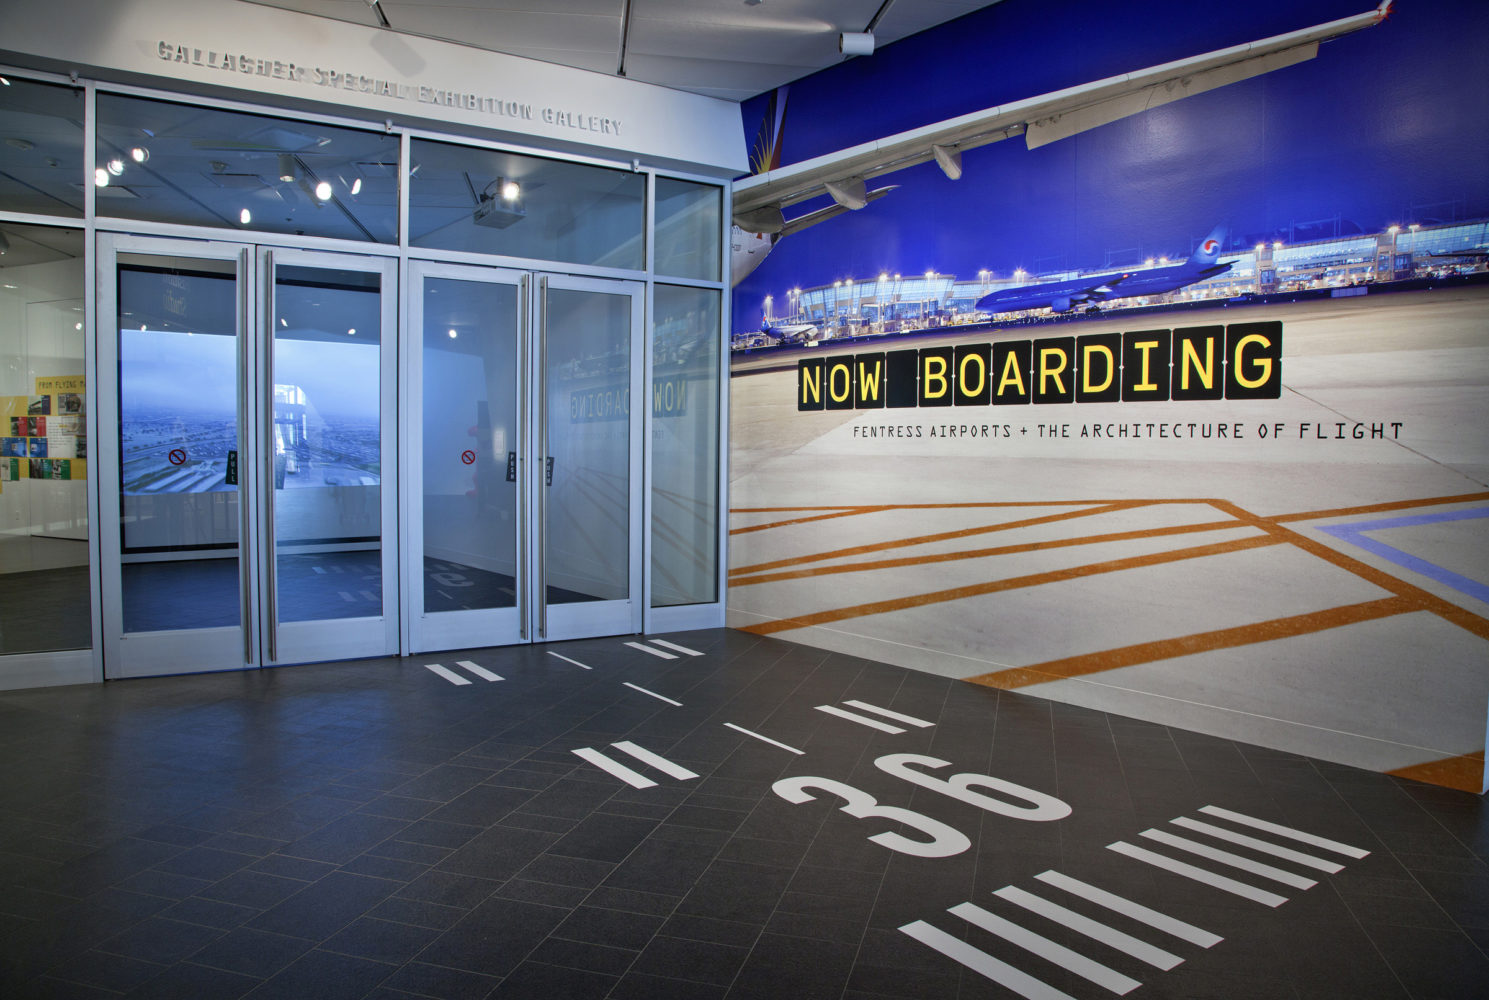 Now Boarding Exhibit About Airports At Denver Art Museum